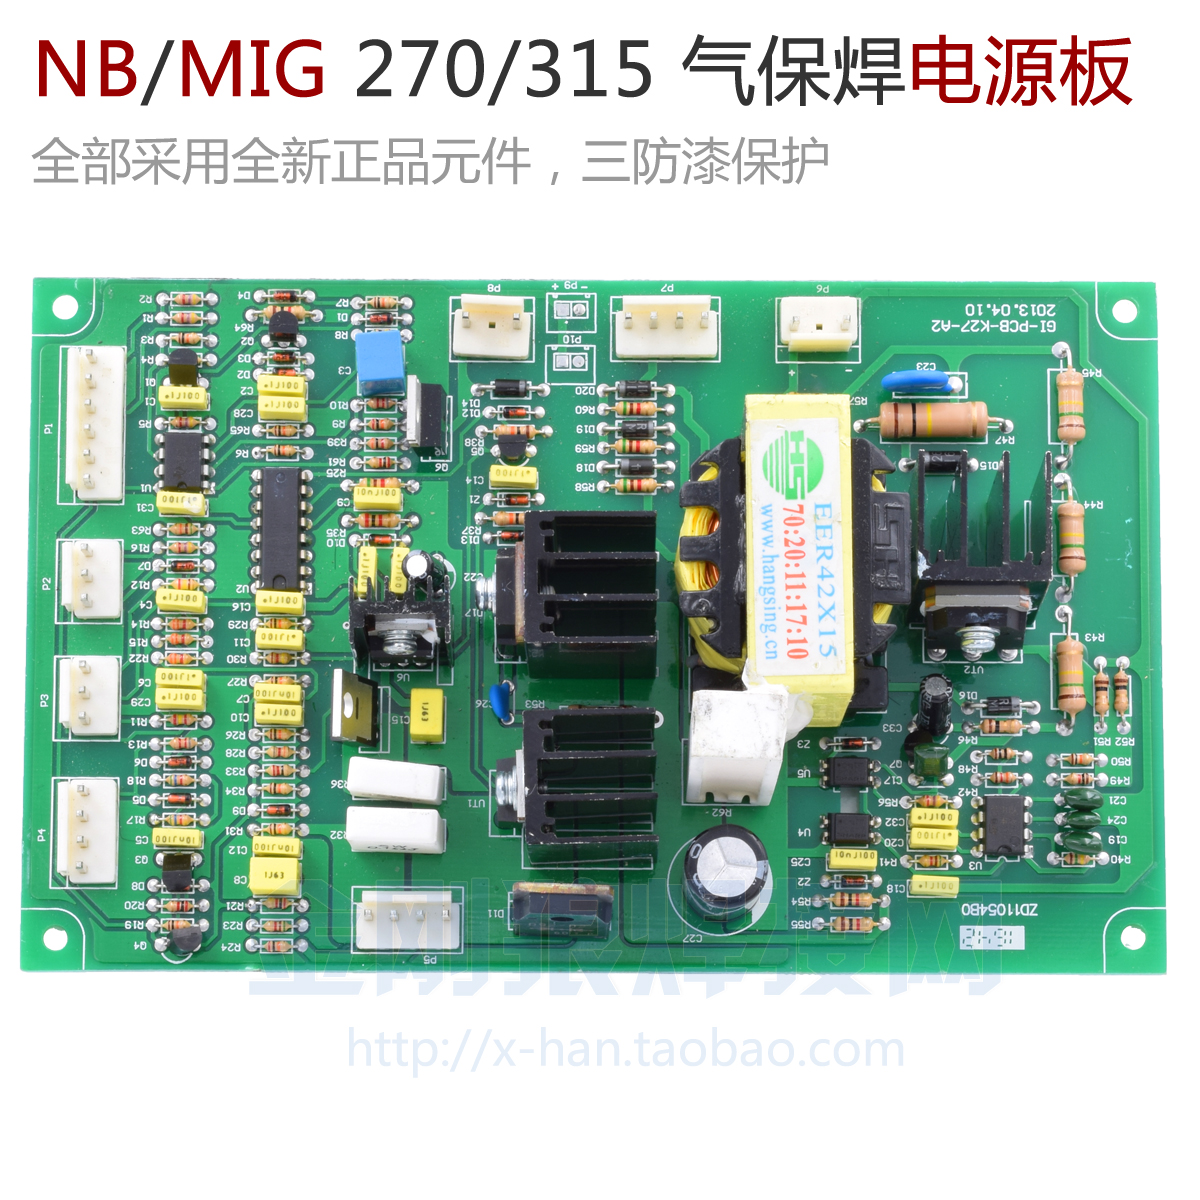 NB MIG 270315 Gas Shielded Welder Power Supply Plate Carbon Dioxide Welding Machine Circuit Board nbc250 315 mos inverter carbon dioxide gas shielded welding machine control board circuit board